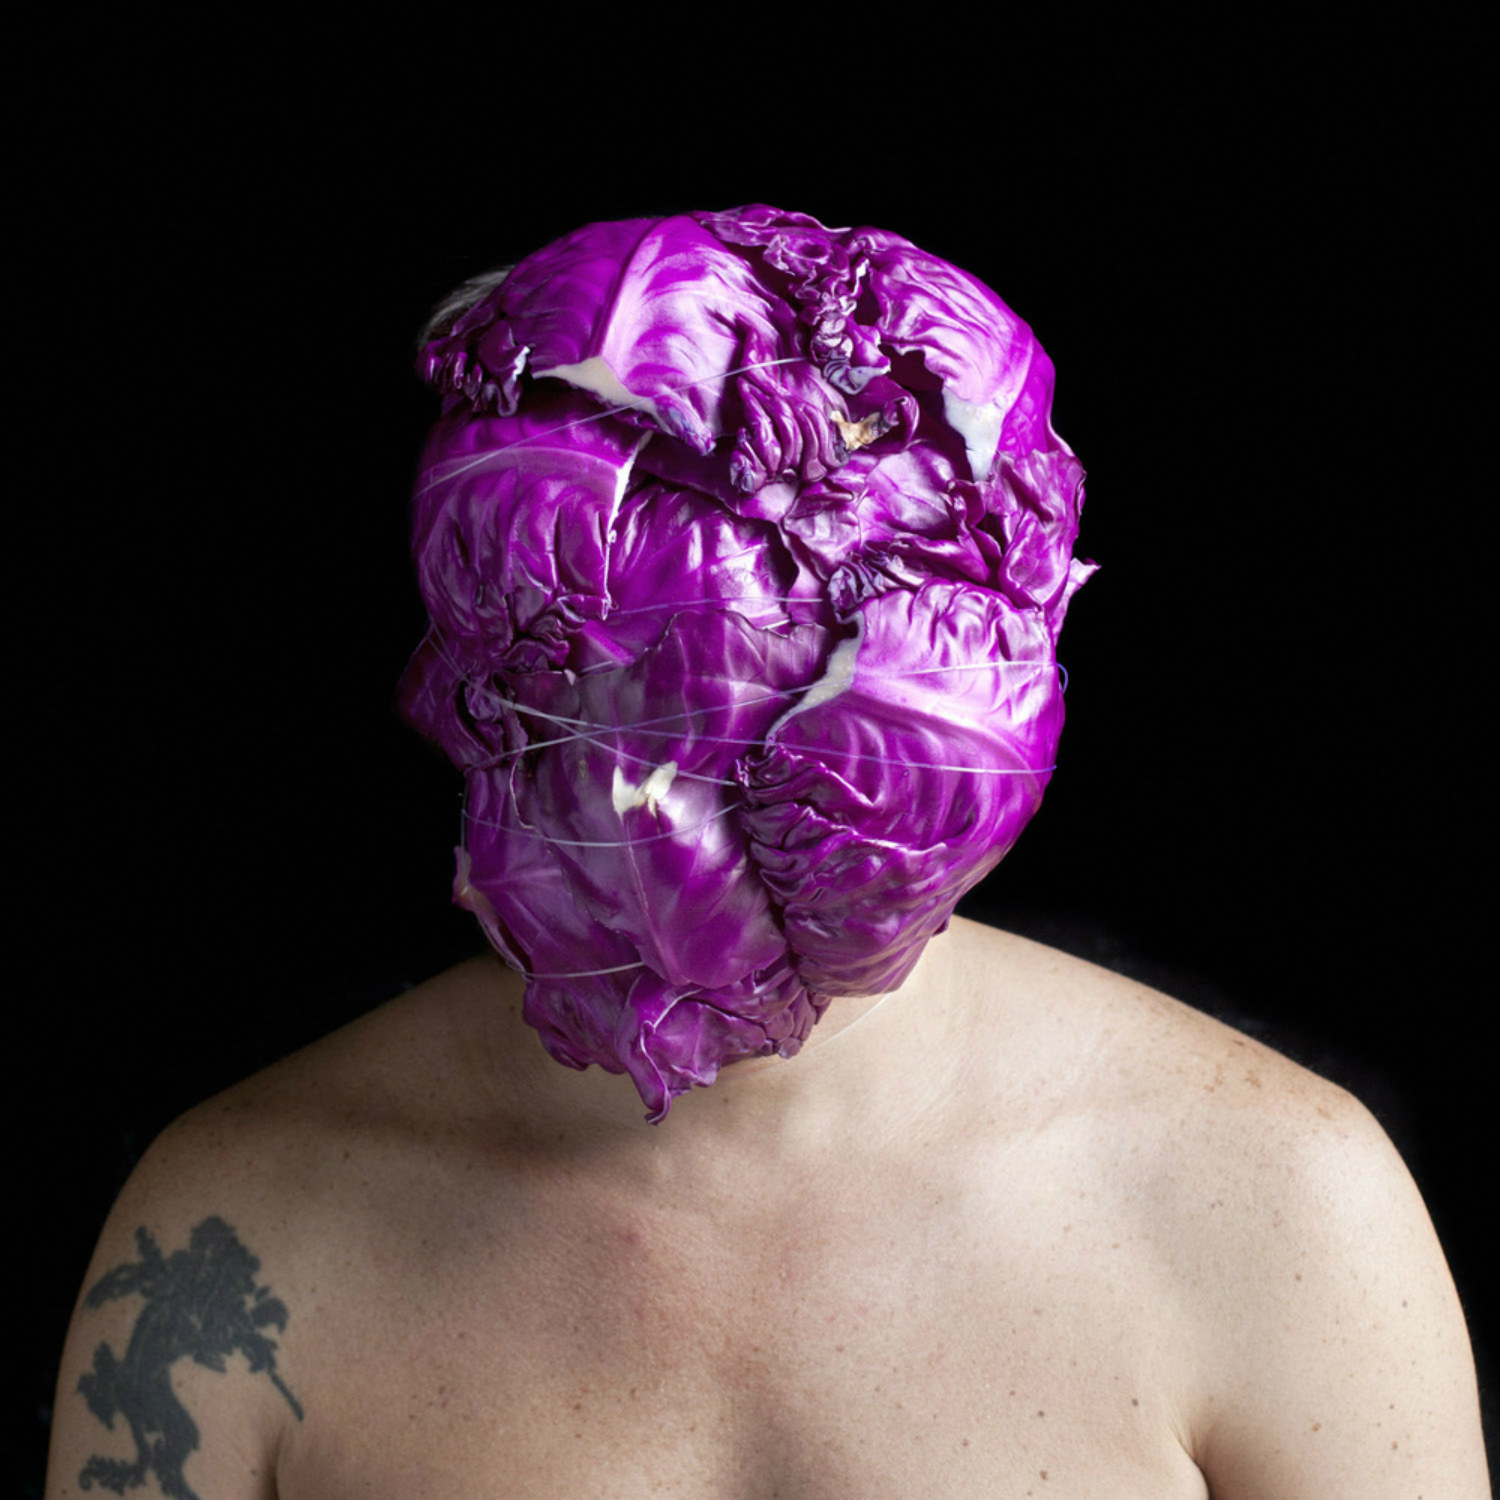 edu monteiro photography portrait gross junk body purple